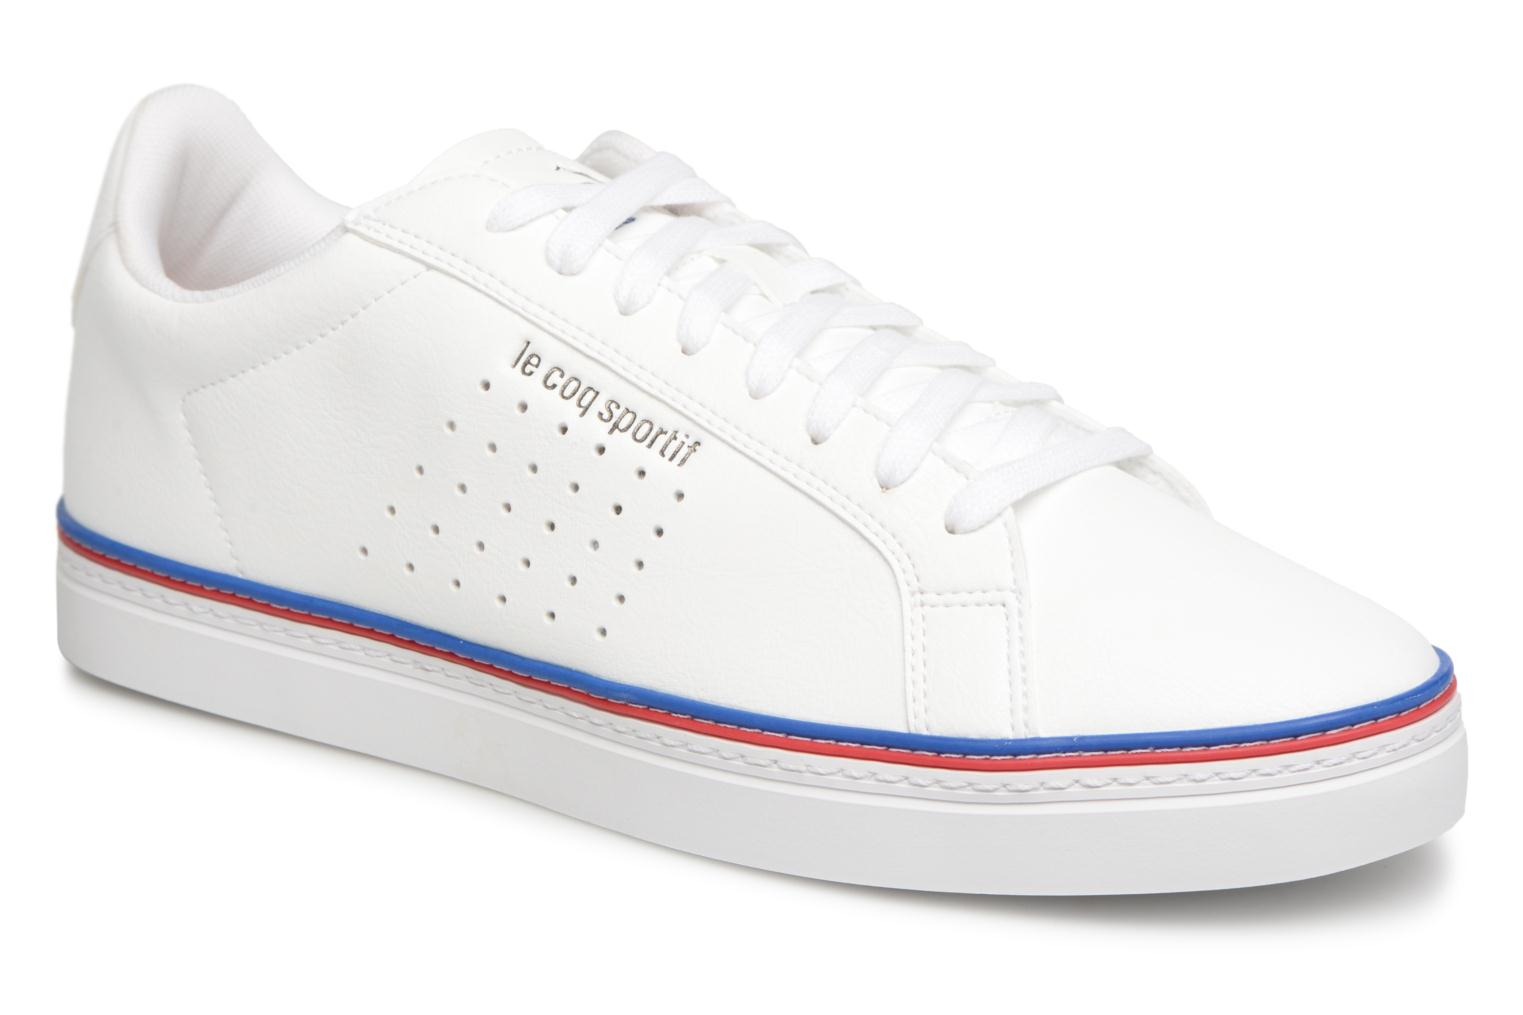 Sneakers Courtace Sport by Le Coq Sportif